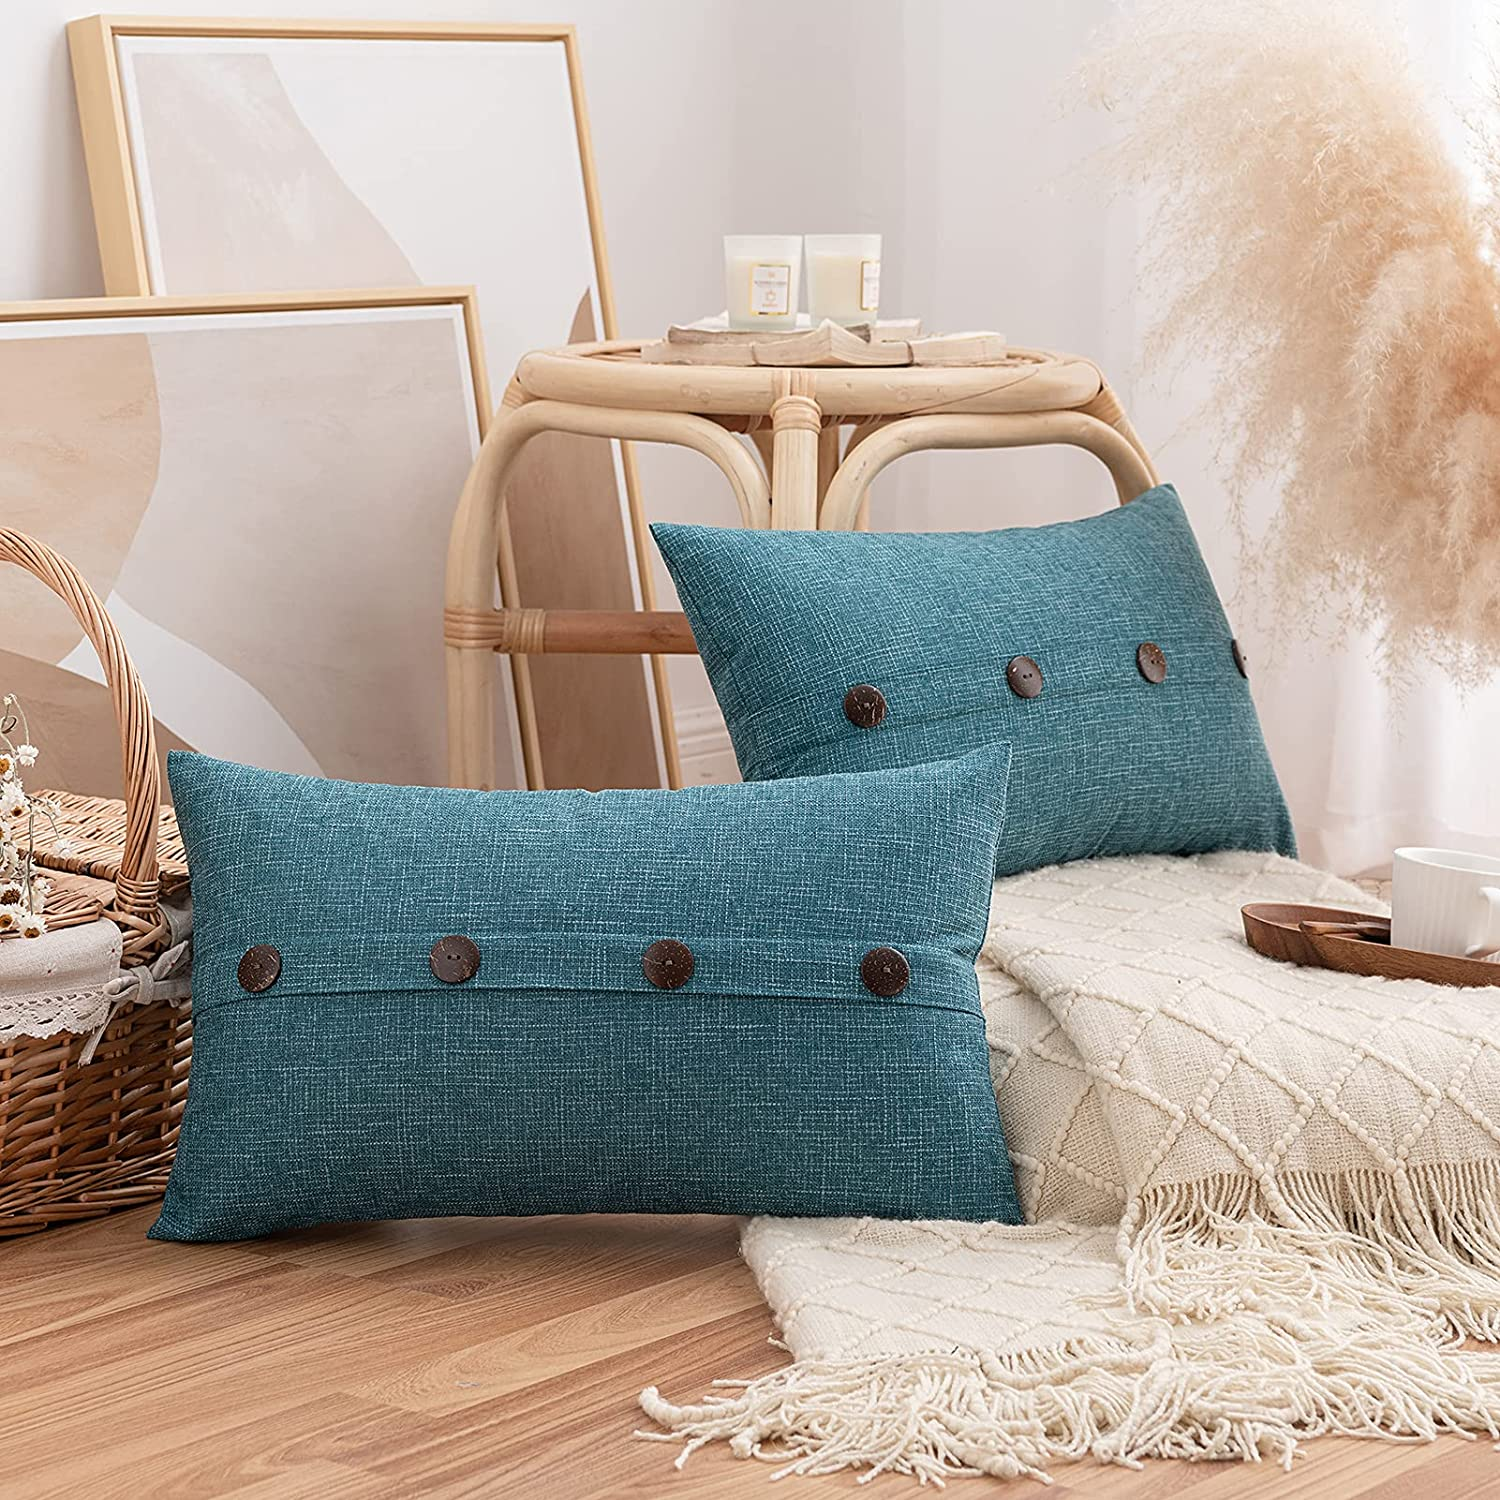 Pack of 2 Burlap Linen Throw Pillow Covers with Buttons, Rustic Farmhouse Decorative Vintage Lumbar Pillowcases Cushion Throw Pillows for Couch Sofa Living Room Chair Decor, Teal, 12 x 20 Inch